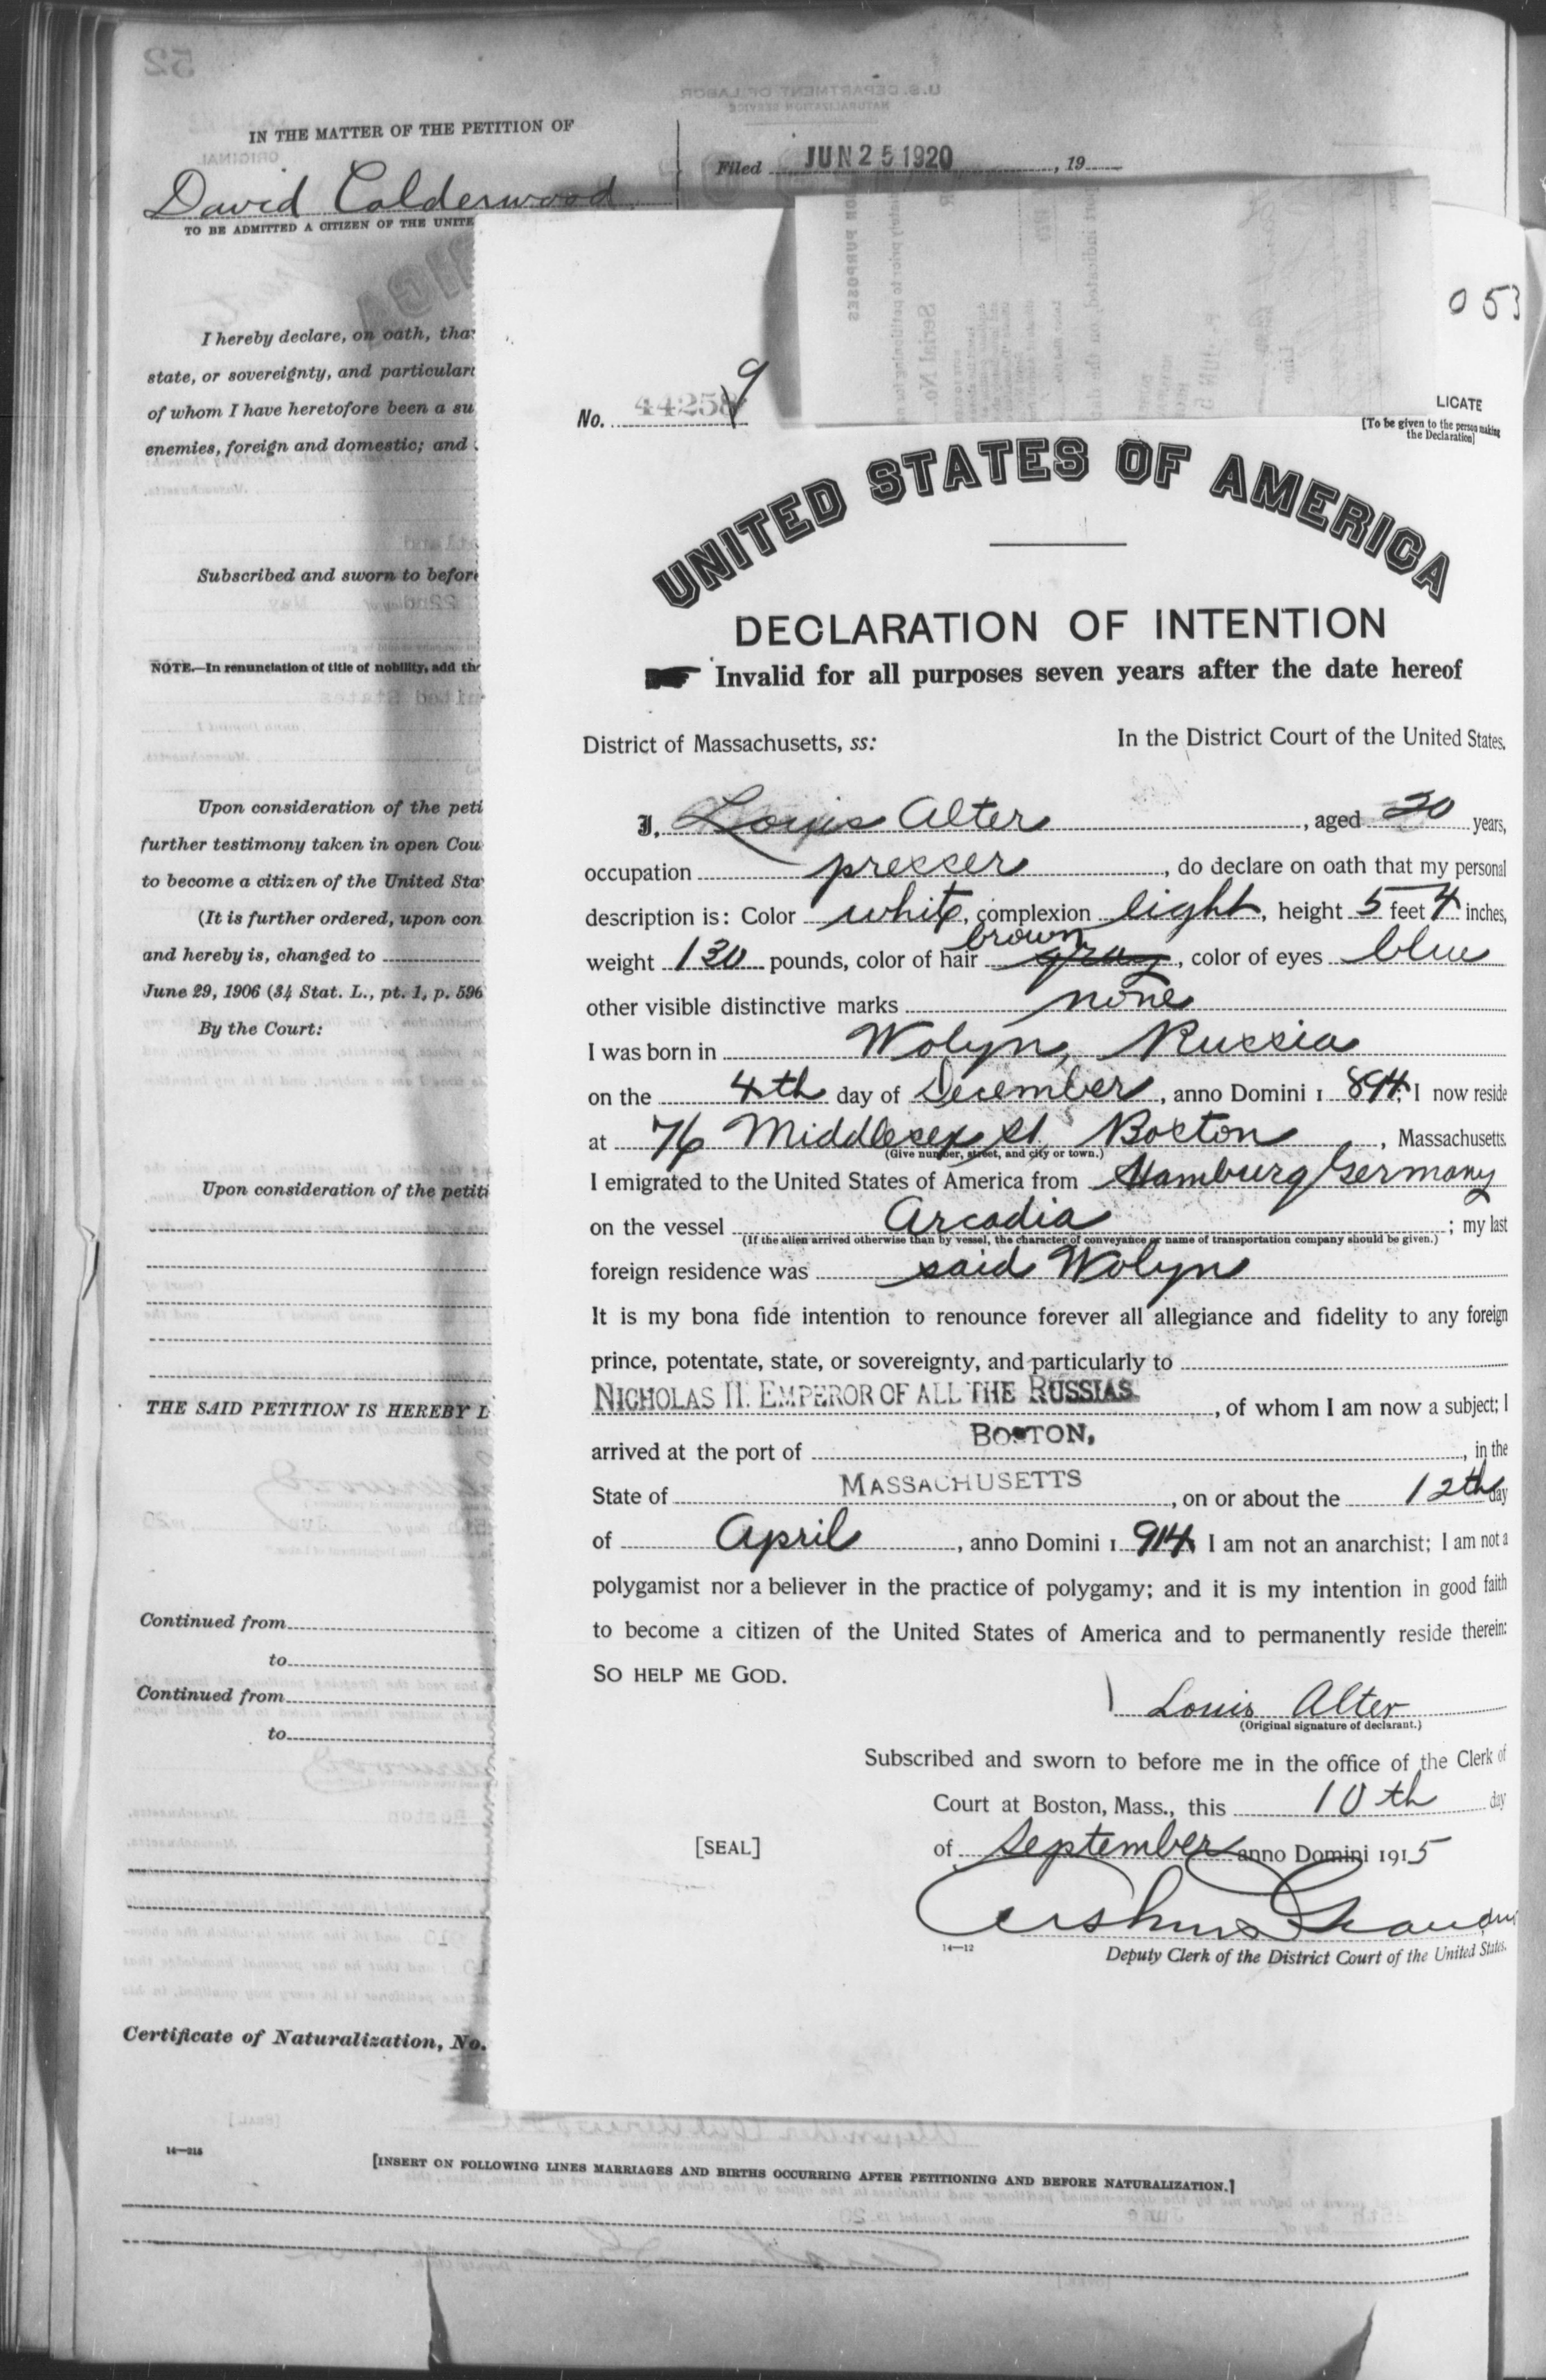 Petition for Naturalization of Louis Alter